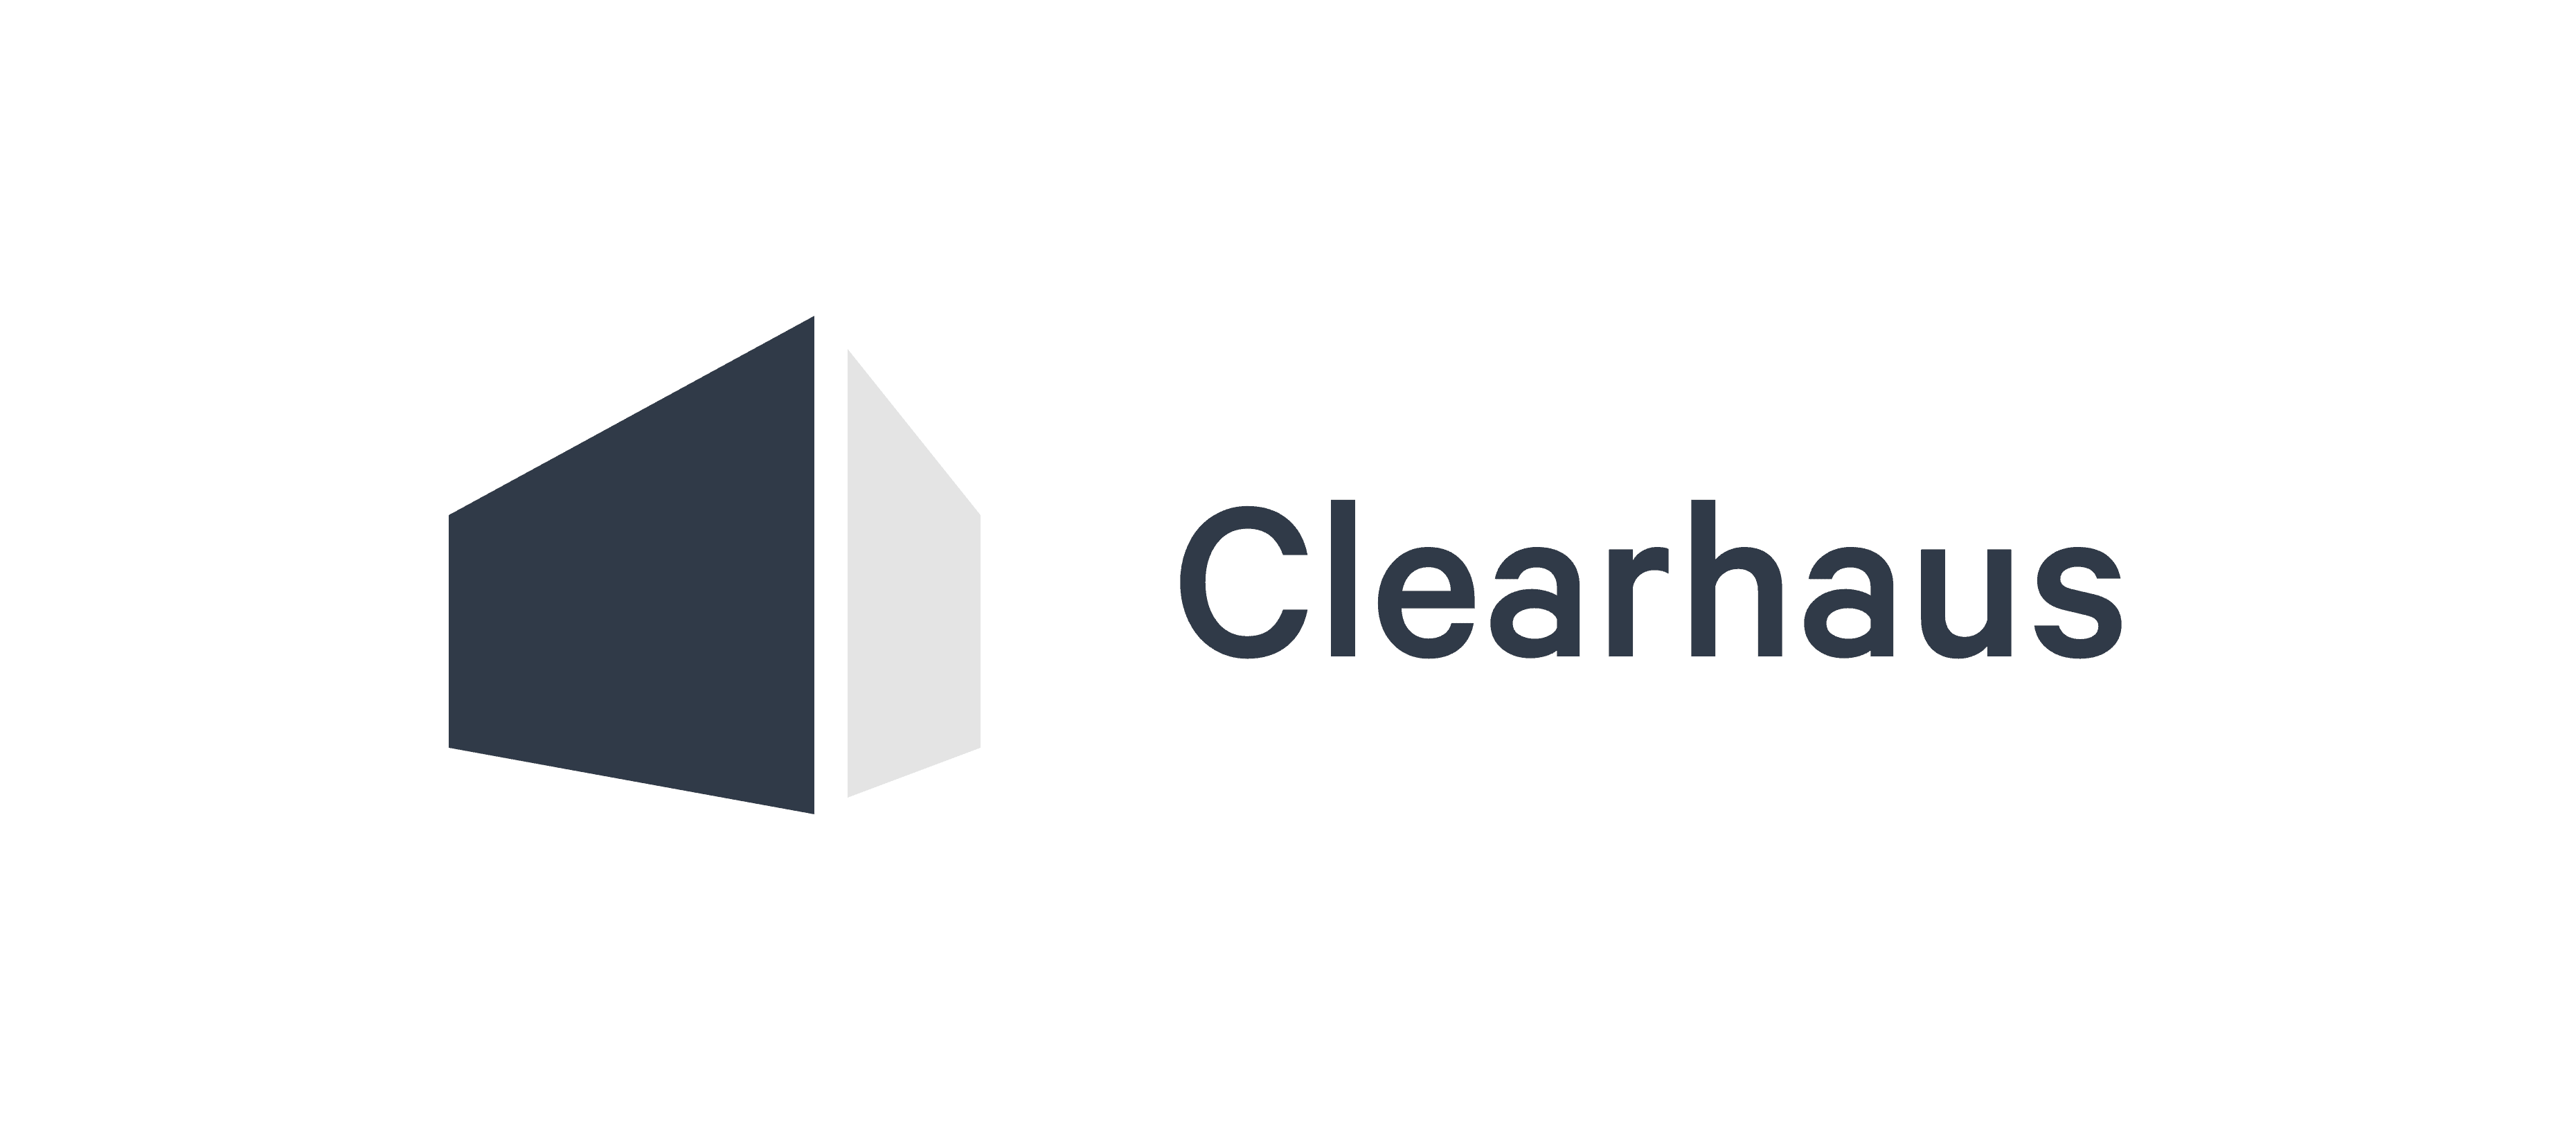 Clearhaus-Newgen Payments partnership creates new opportunities for European ISOs and PSPs